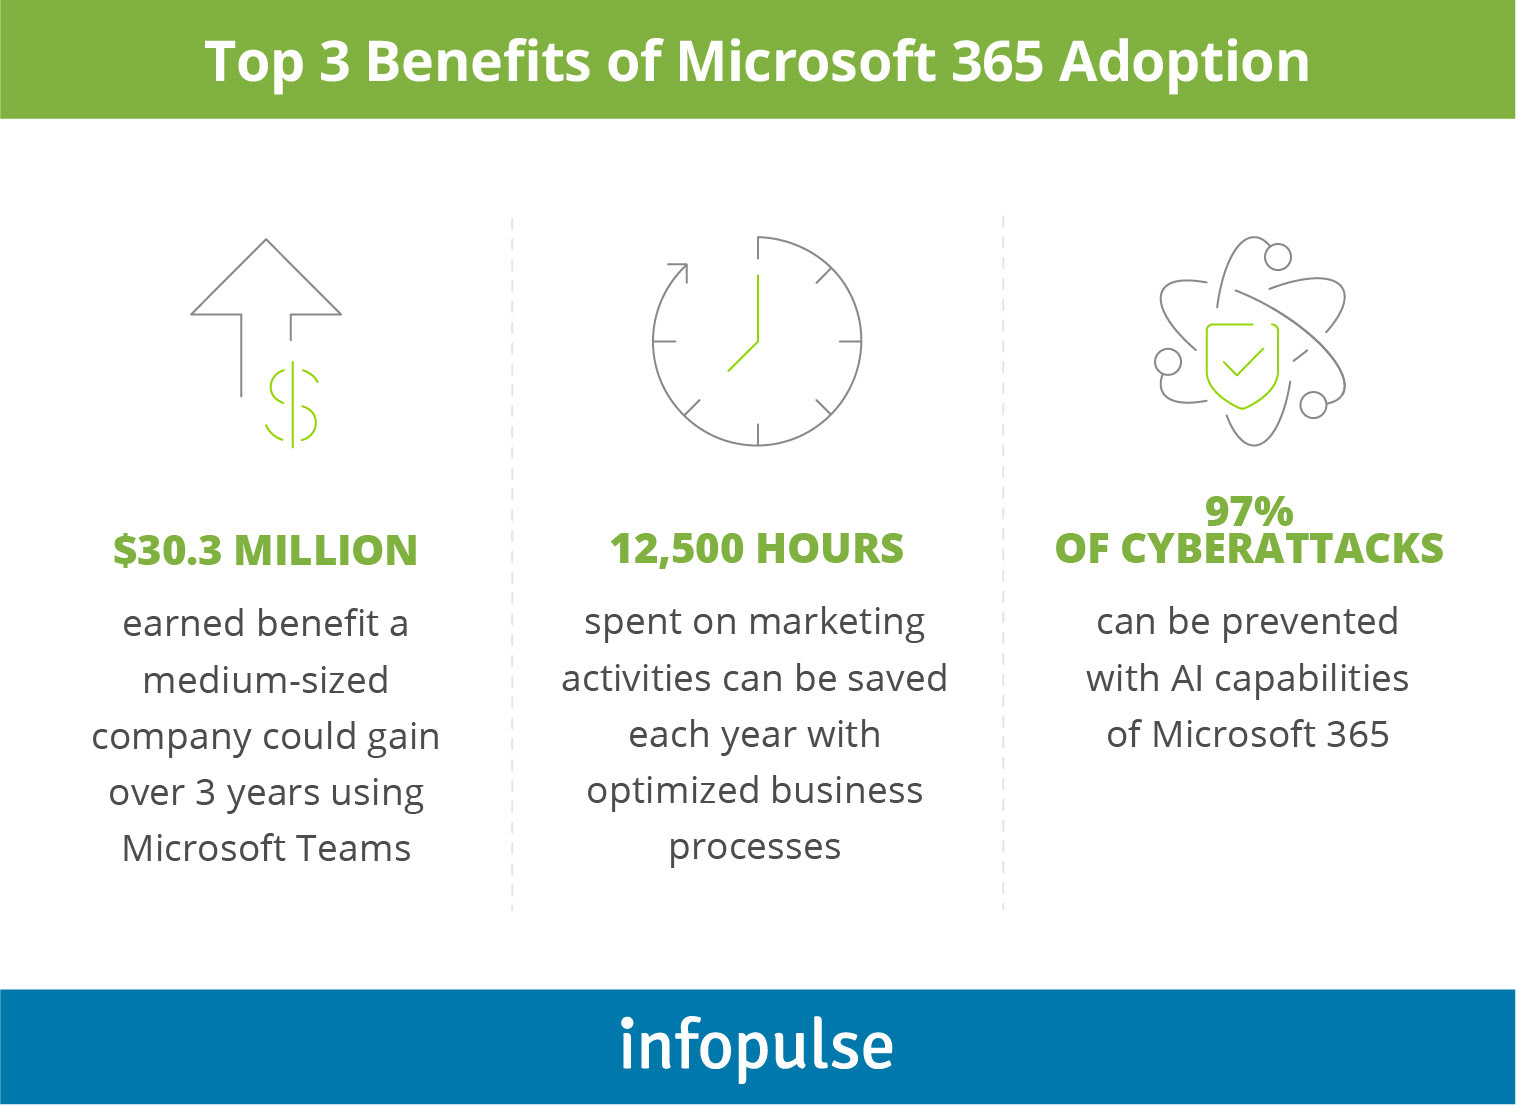 Microsoft 365 Migration and Adoption - Infopulse - 2